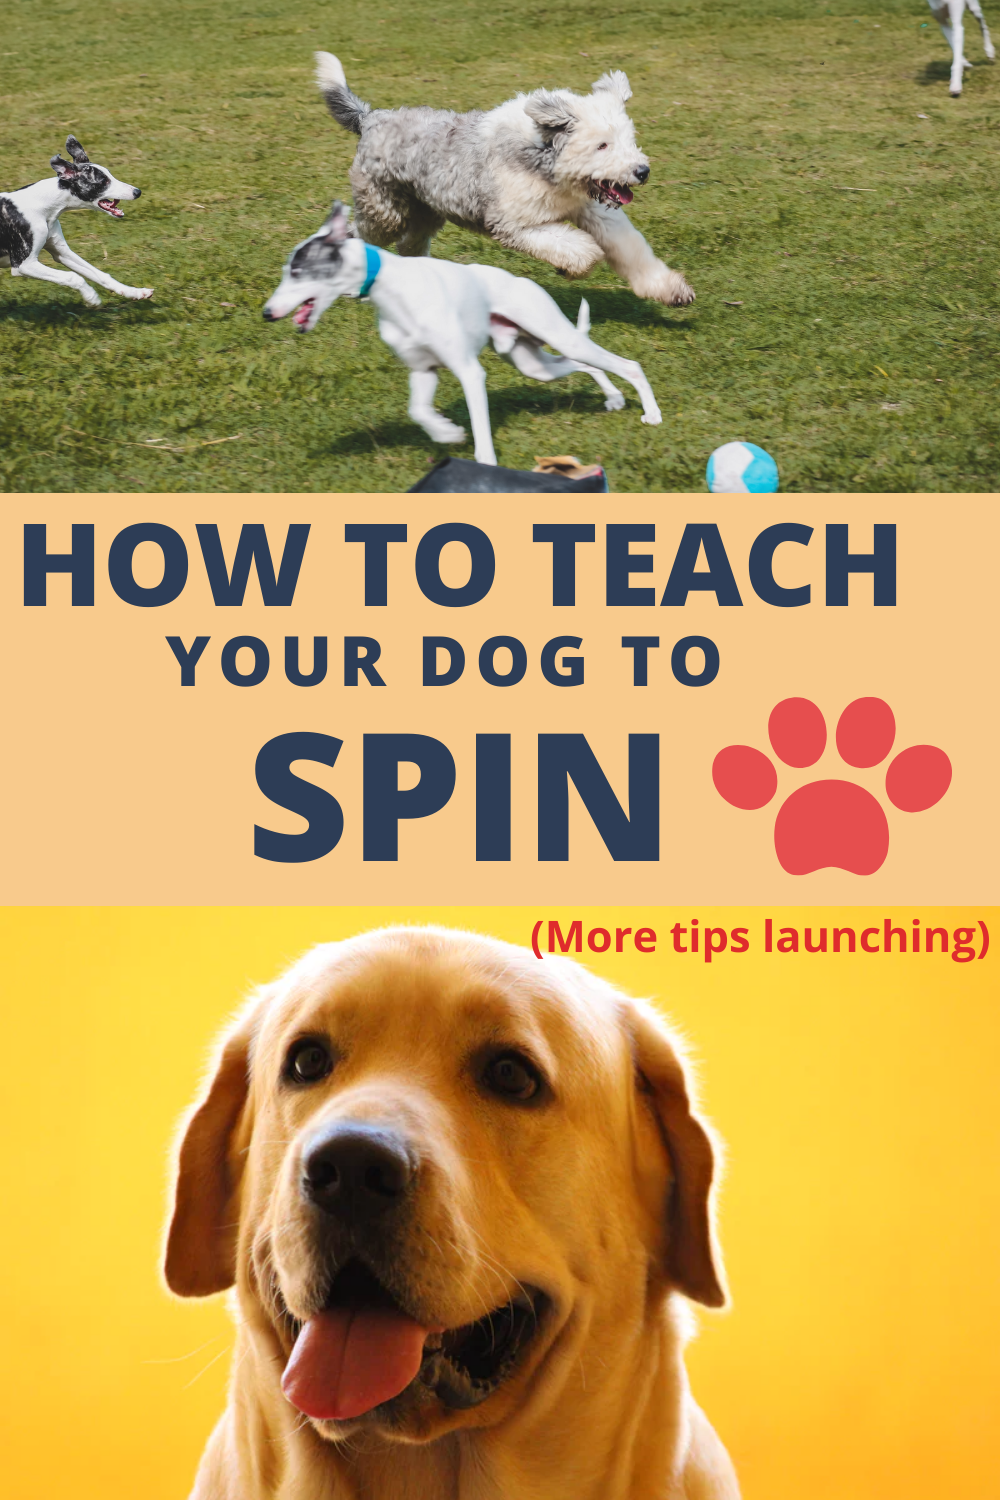 Get A Load Of That Dog : Training!, Spin!, Steps, Revealed), Dogs,, Training